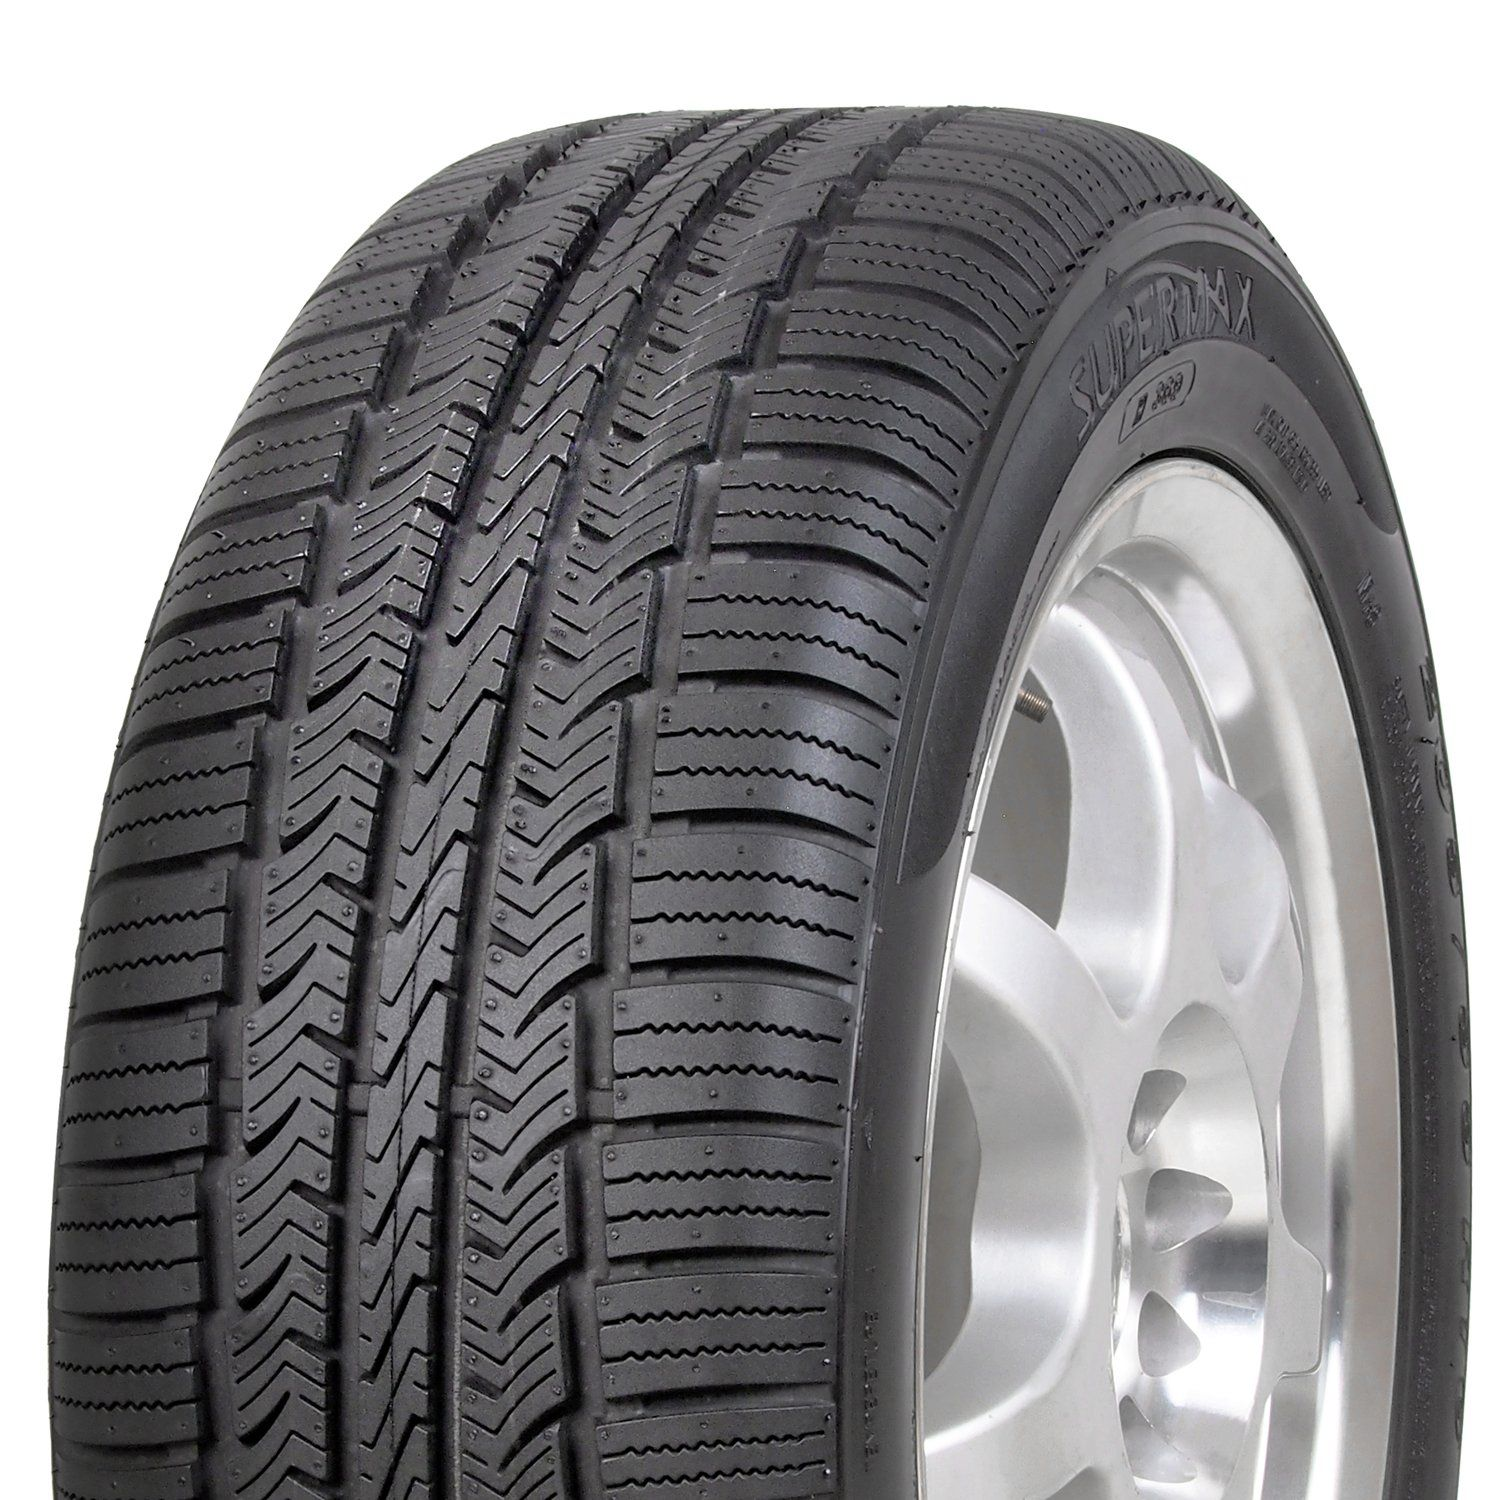 Supermax Tm 1 All Season Radial Tire 235 65r17 104t Click Image For More Details This Is An Affiliate Link In 2020 Tire Best Tyres Automotive Tires